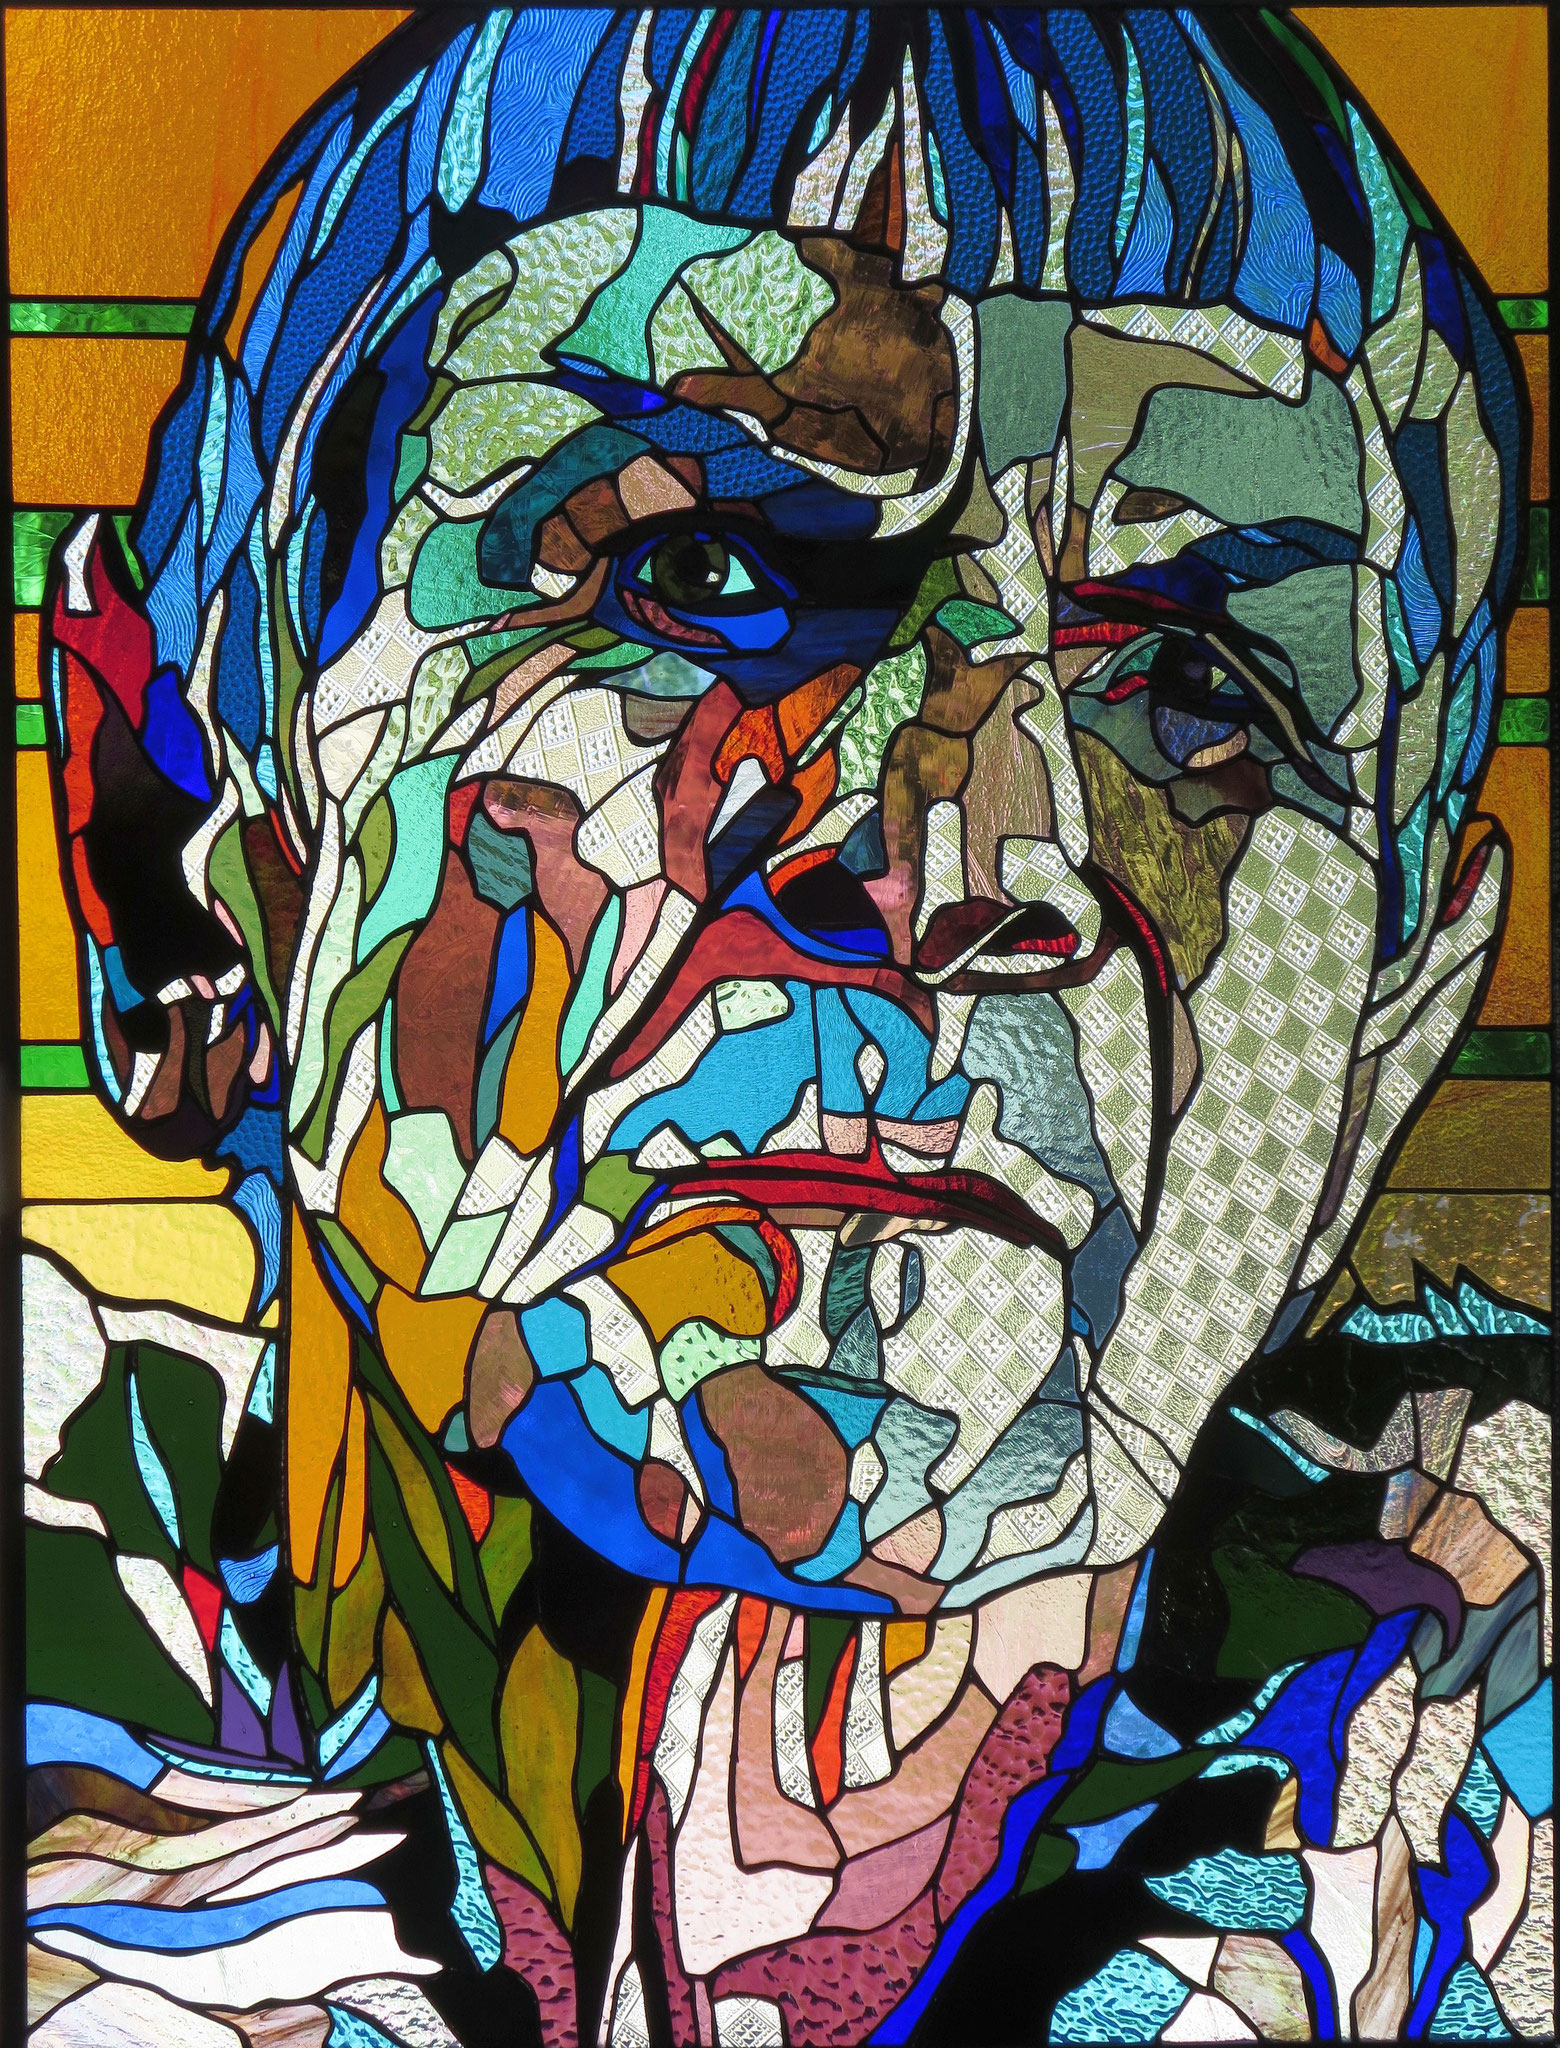 2018 New! SPOCK 26 x 34.5 inches stained glass